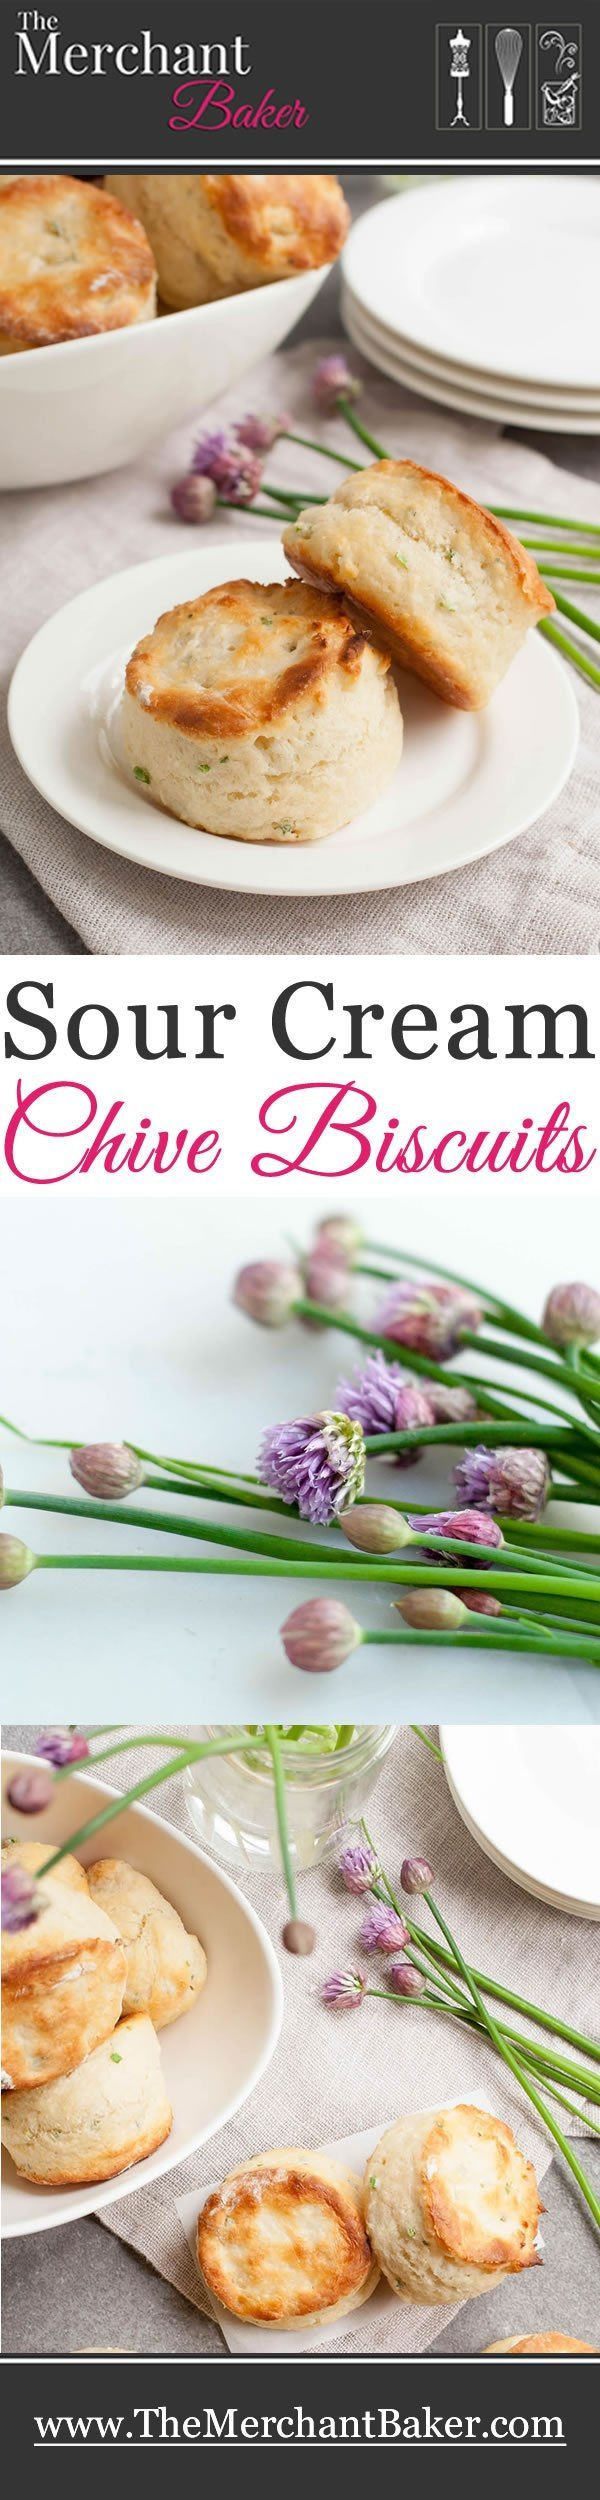 Sour Cream Chive Biscuits. Savory biscuits that are light and fluffy with the mild tang of sour cream that pairs so perfectly with fresh chives.